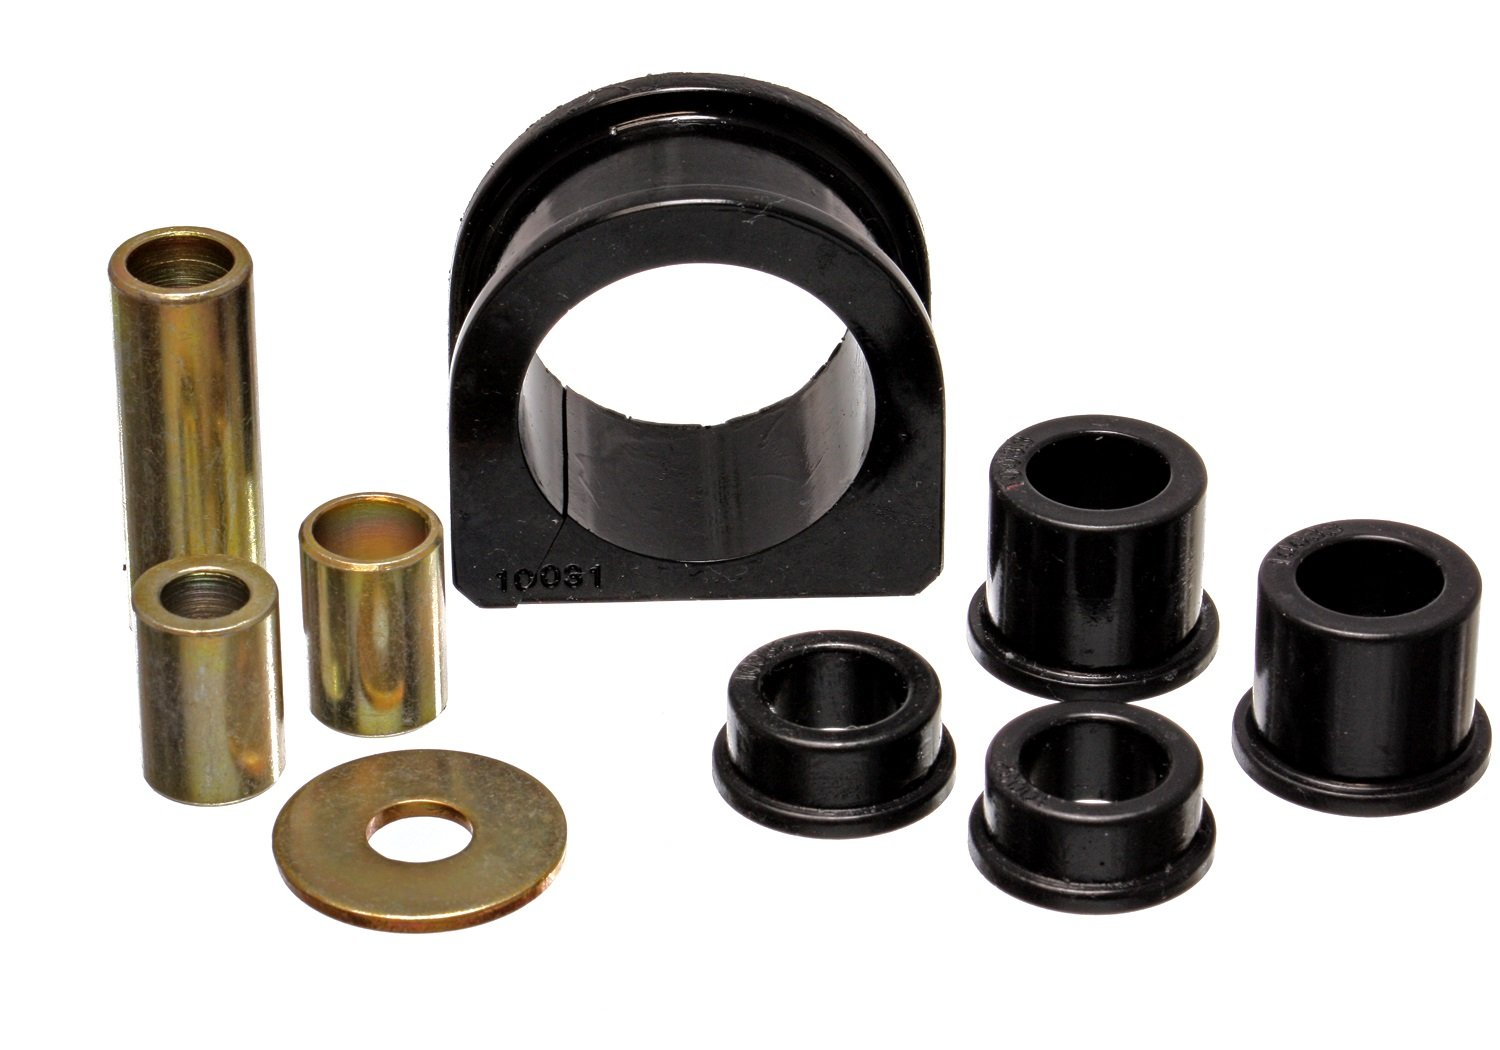 Energy Suspension 8.10101G Power Steering Rack Bushing For 1995-2000 Toyota Tacoma 4WD Only